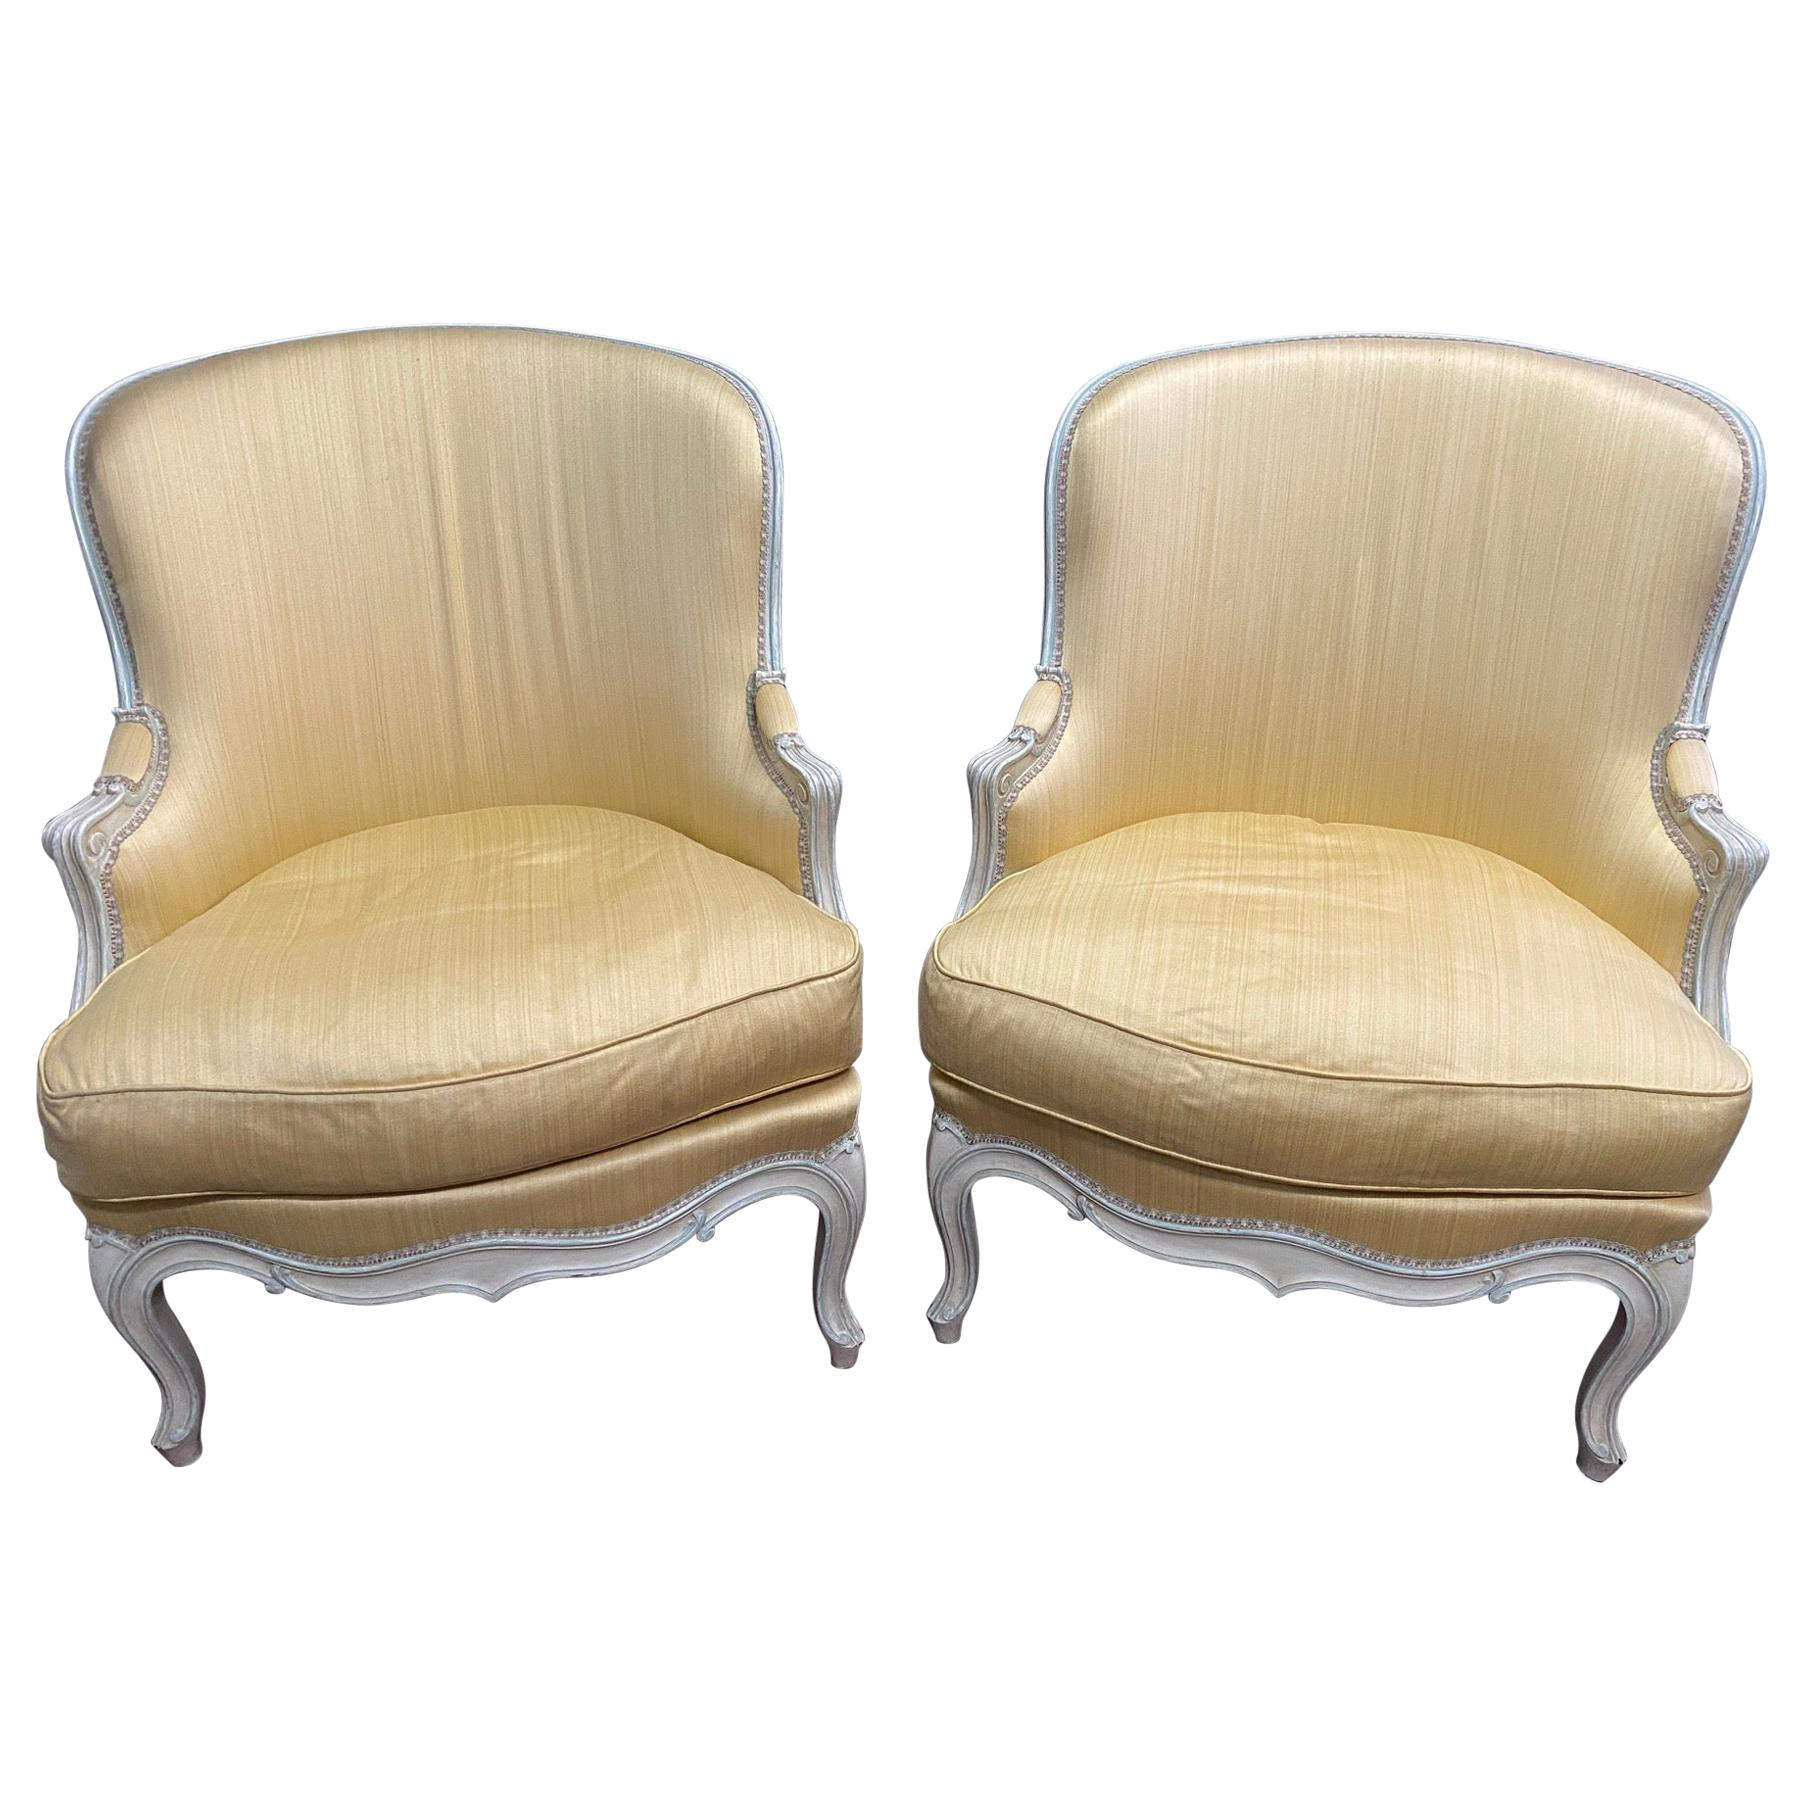 Pair of Louis XV Style Yellow Upholstered Painted Wood Bergère Chairs